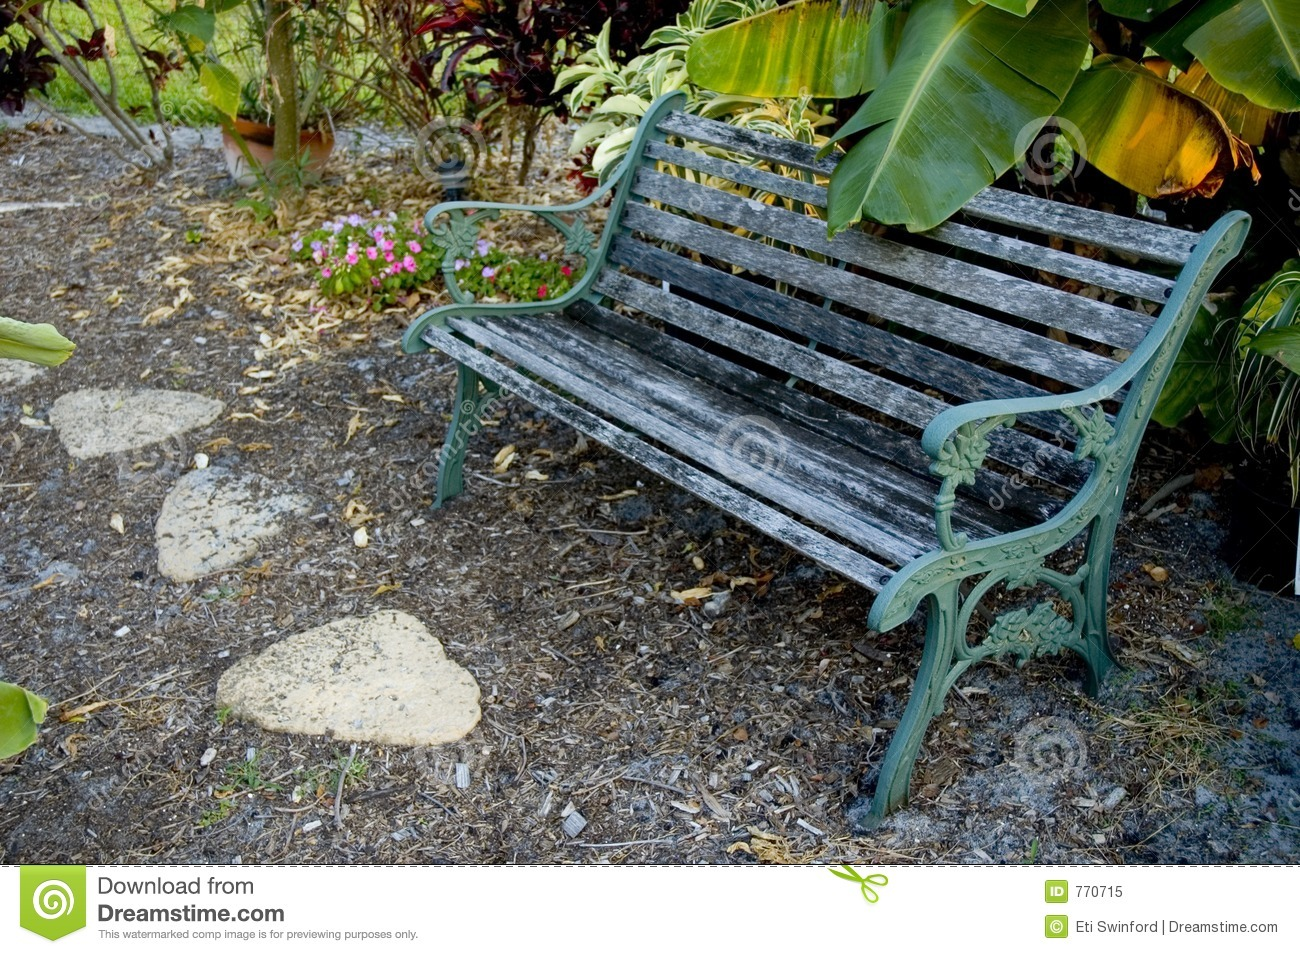 Awesome banc de jardin trigano pictures for Abri de jardin trigano